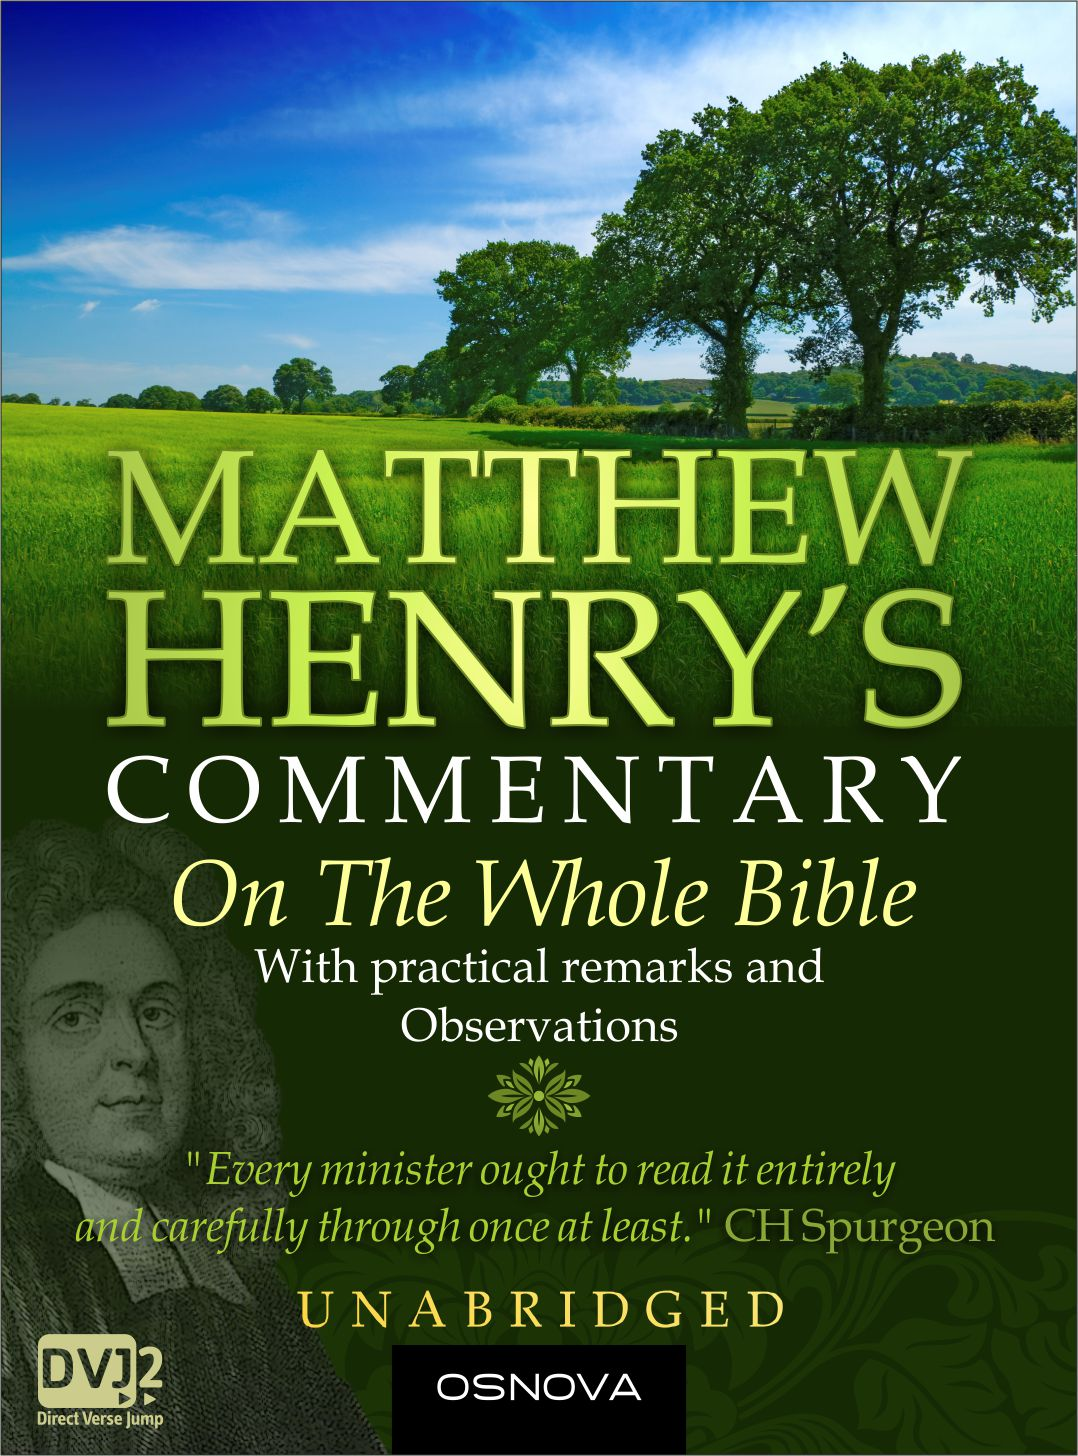 Commentaries On The Times: Bible Commentaries For Better Knowledge Of The Scriptures